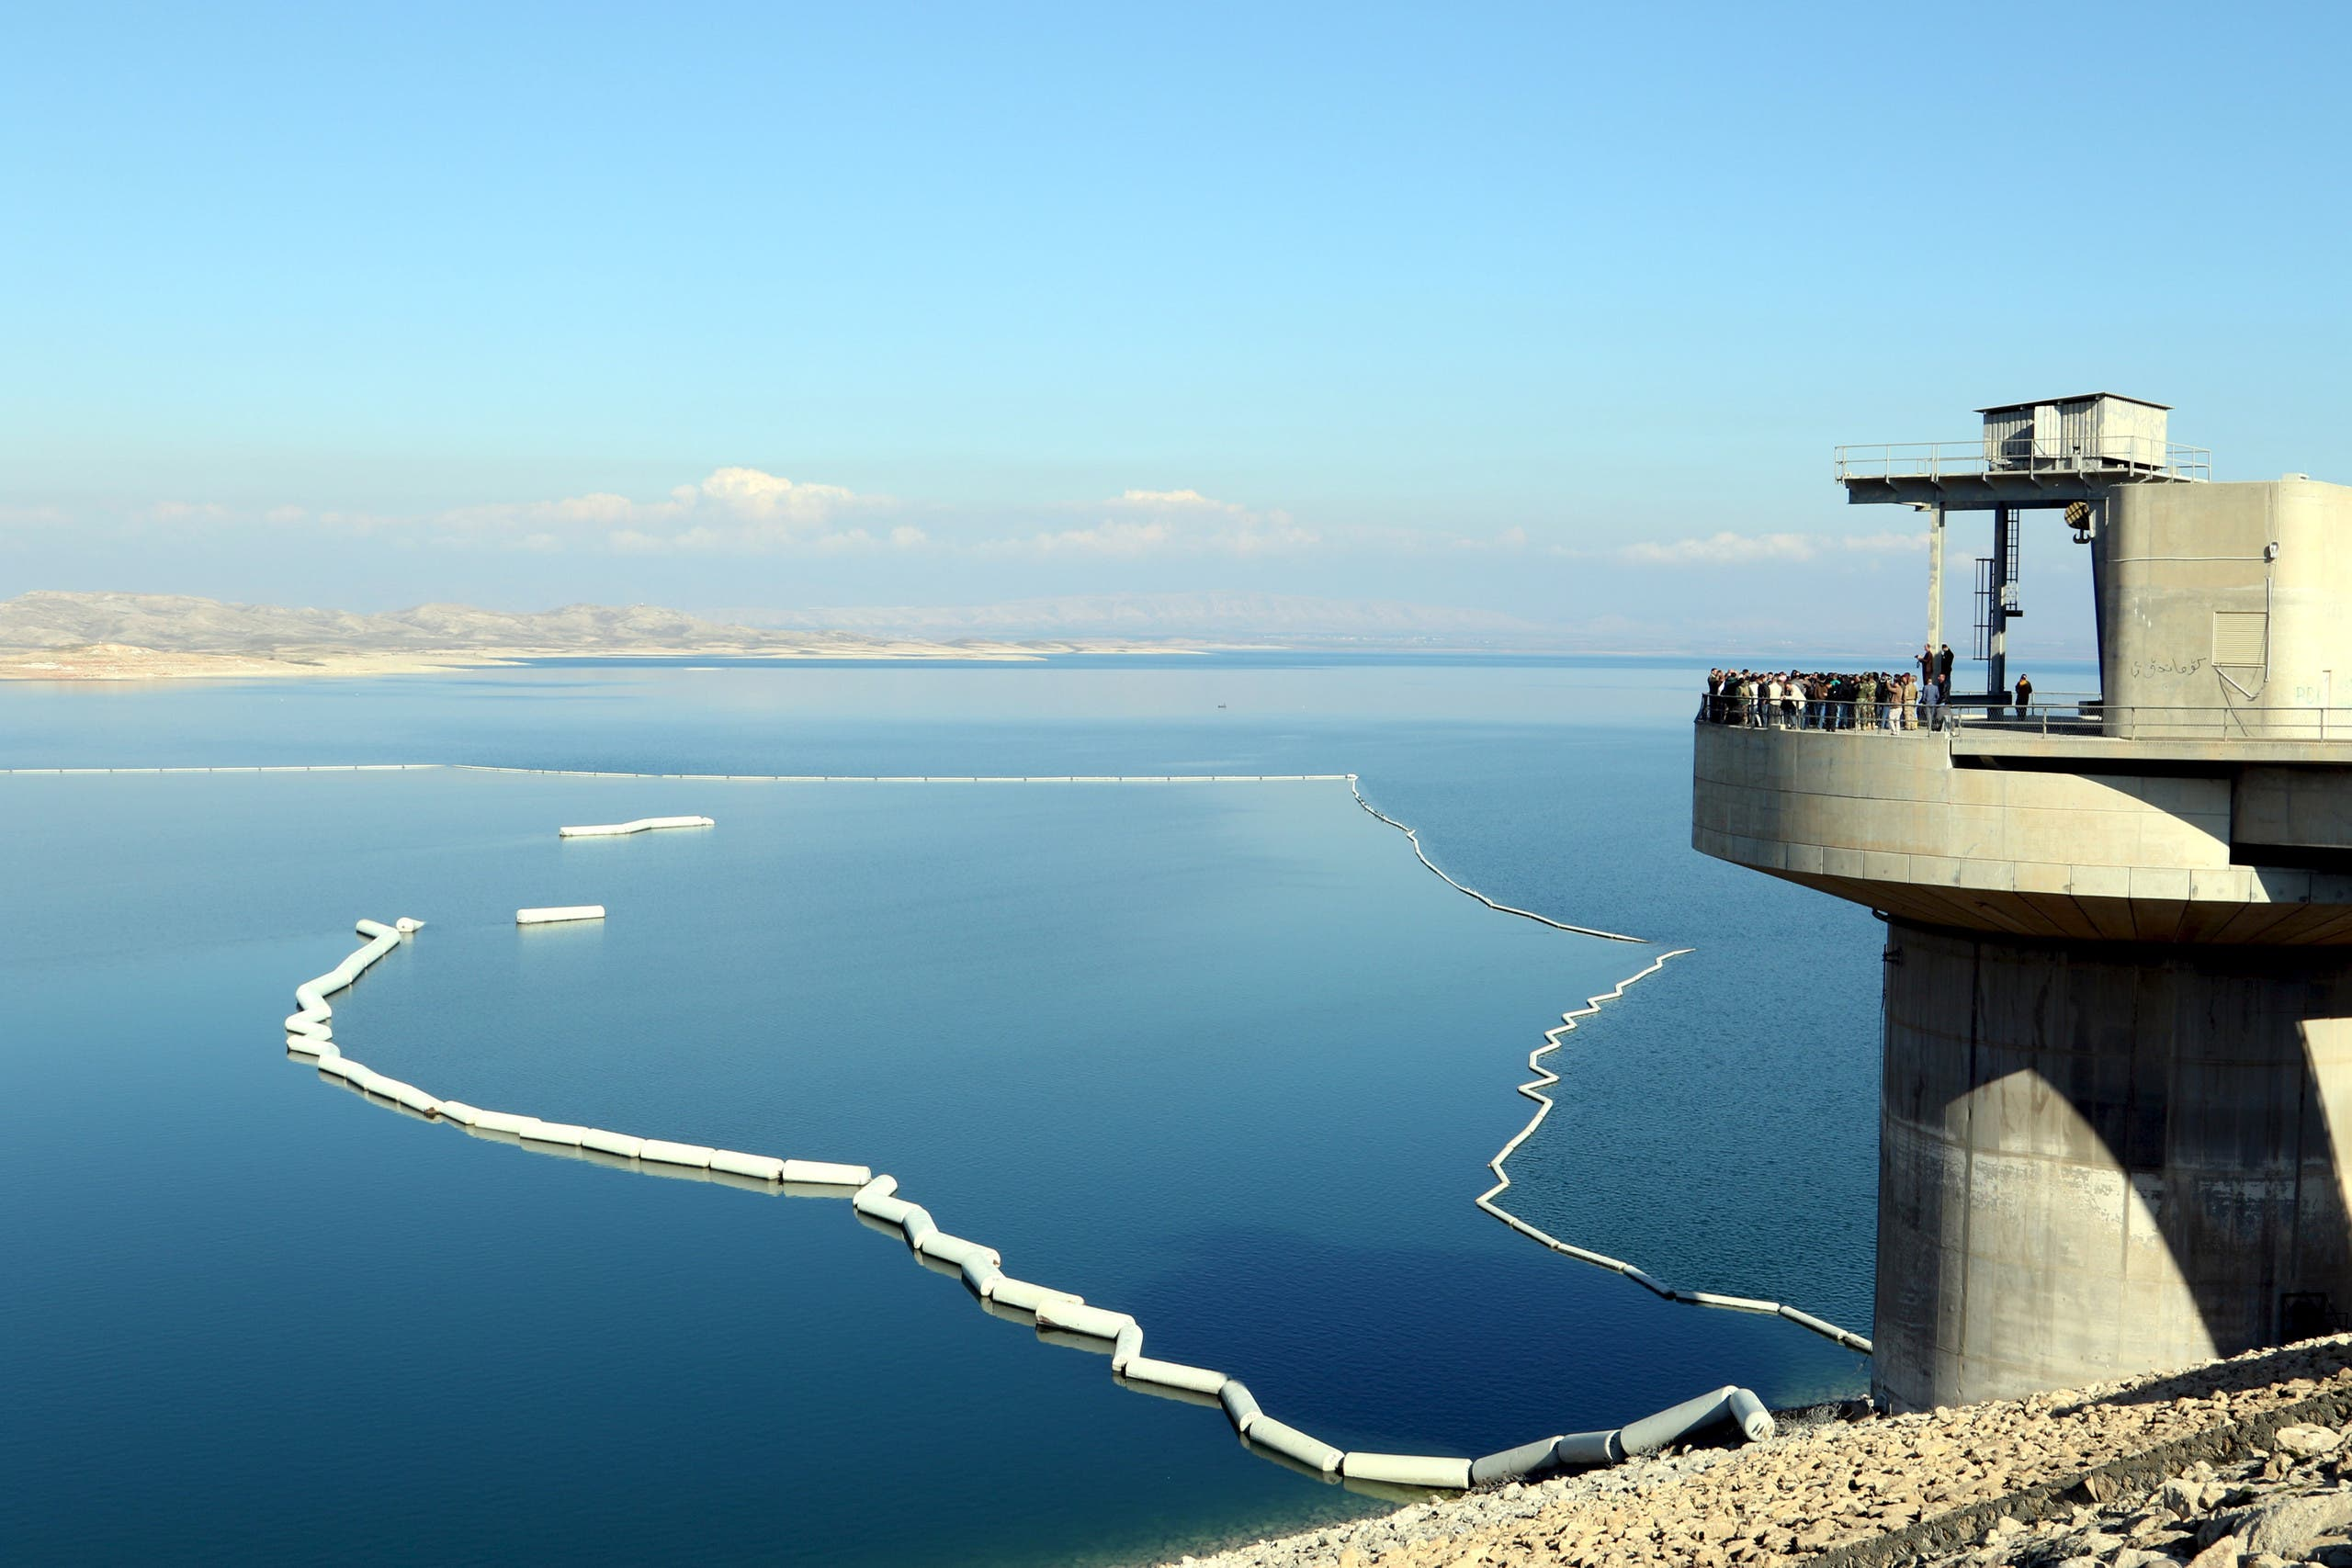 A view a section of the Mosul Dam in northern Iraq, February 3, 2016. (Reuters)